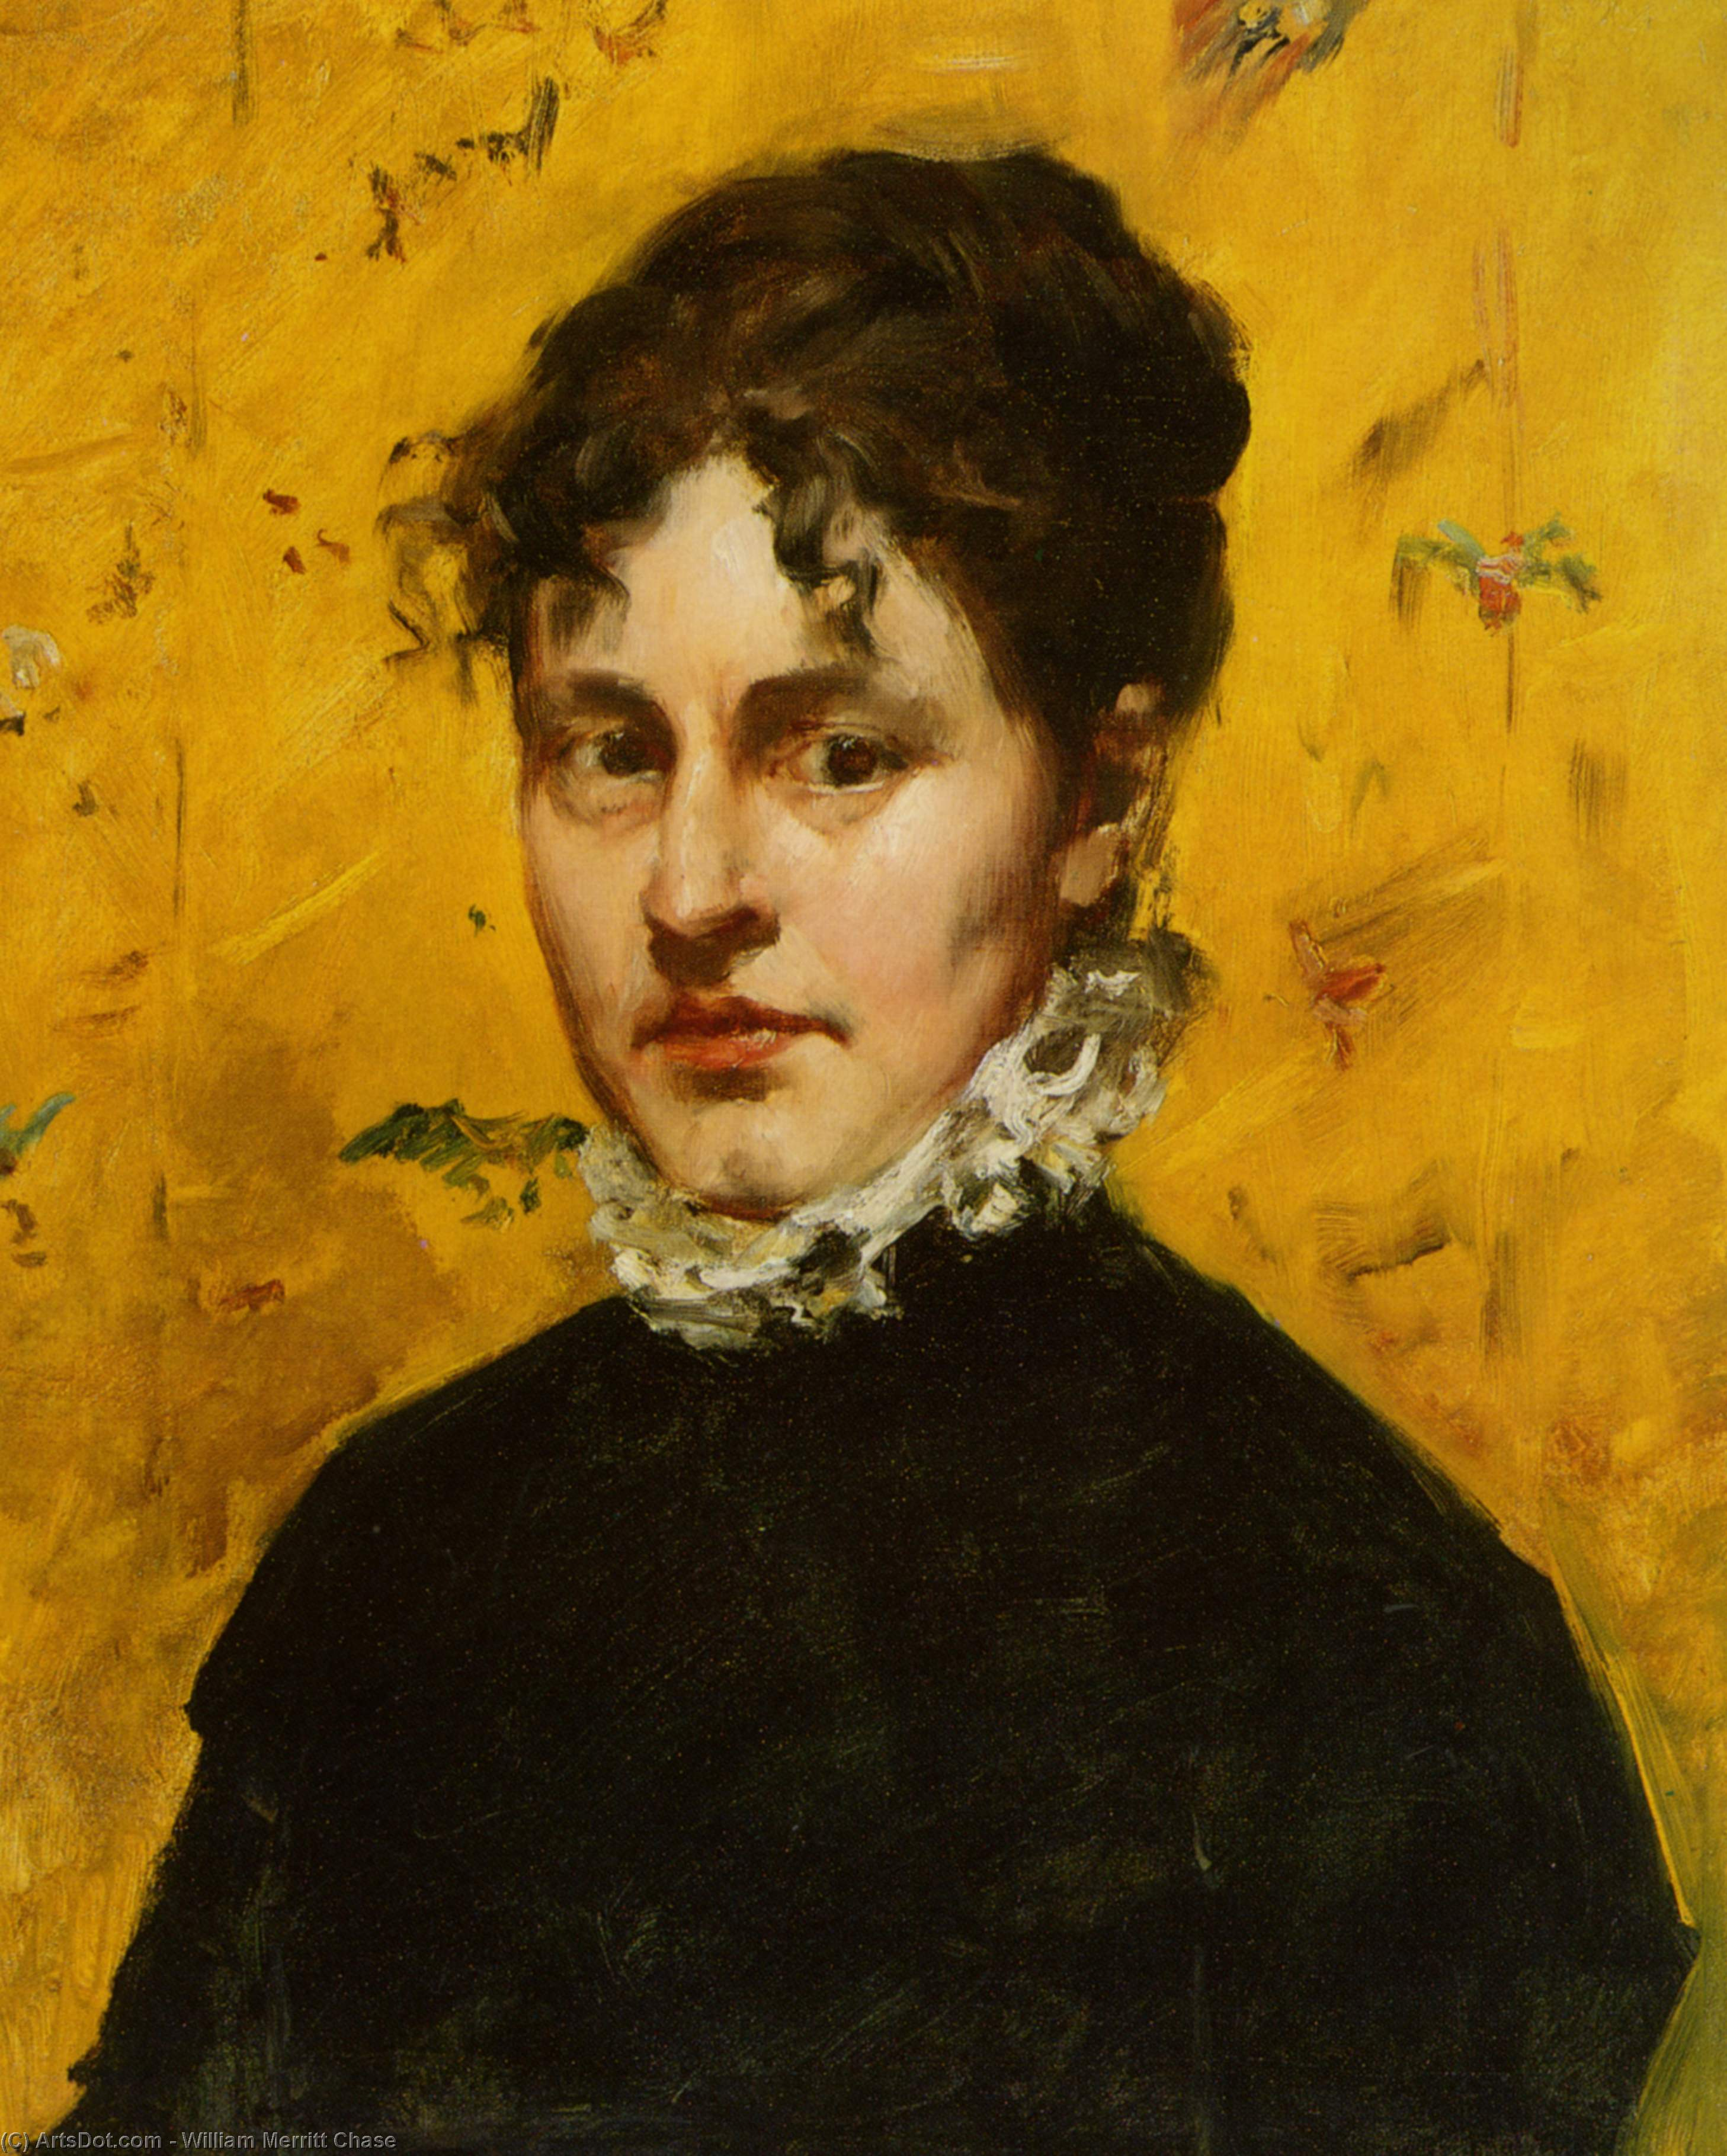 Портрет тот Artist's Sister-in-Law, холст, масло по William Merritt Chase (1849-1916, United States)